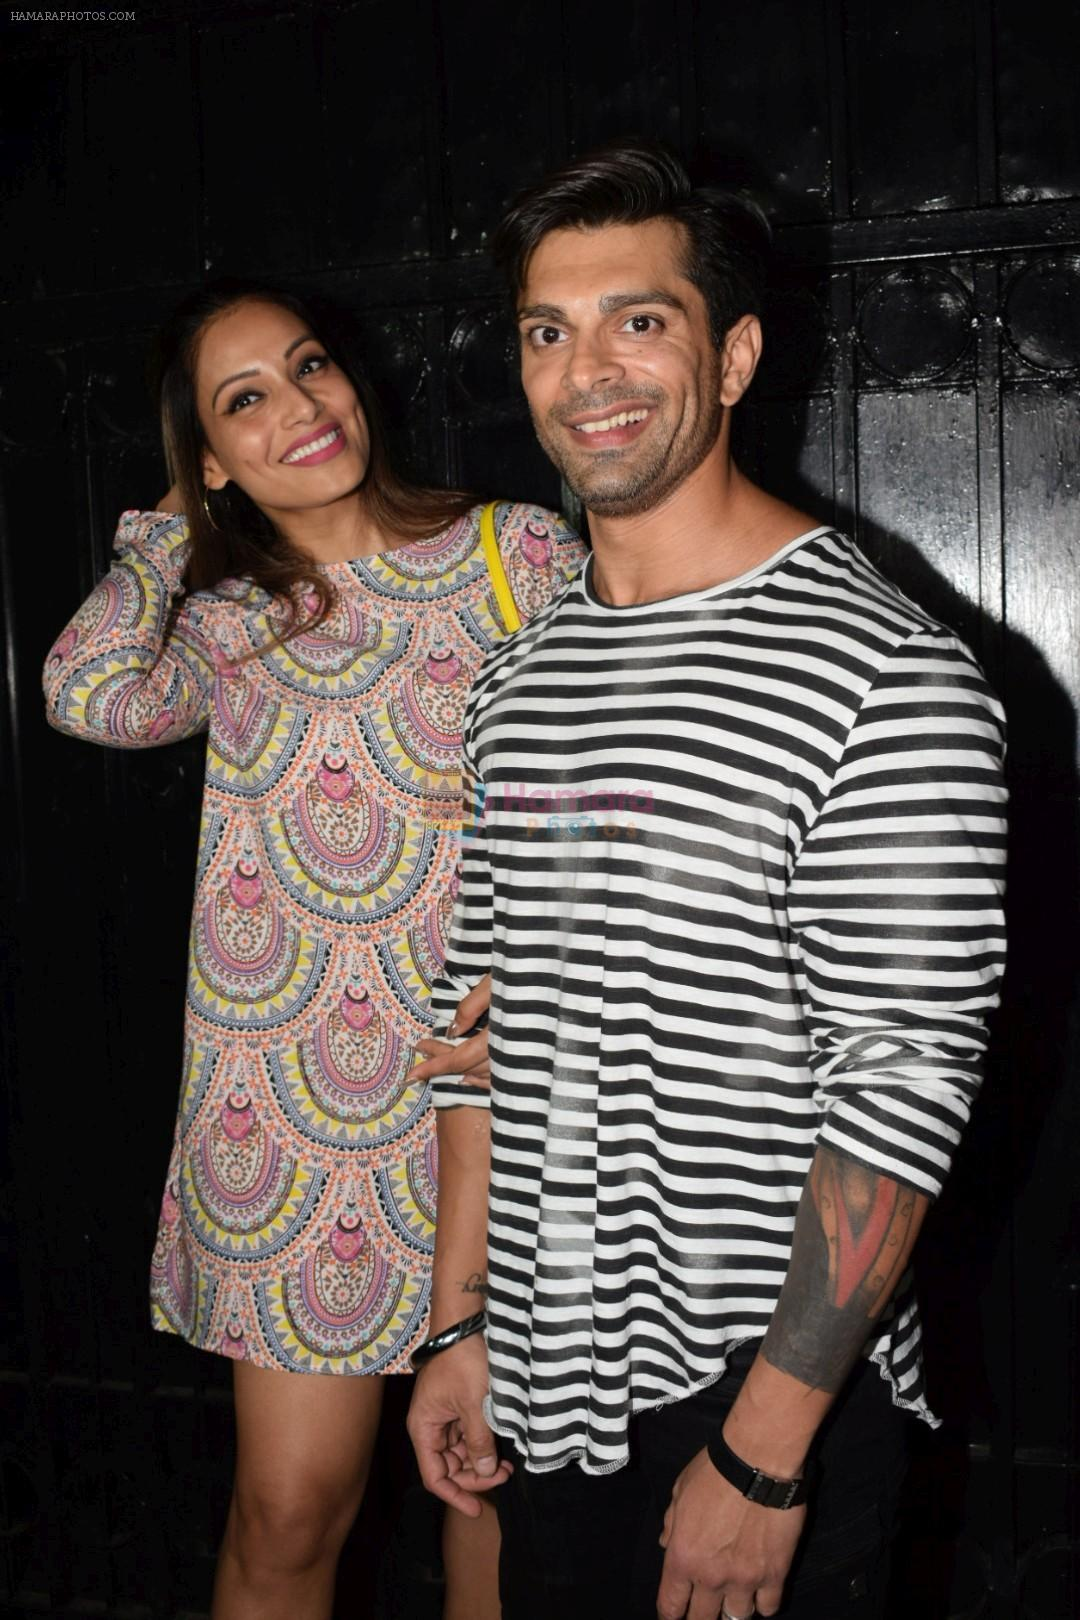 Bipasha Basu, Karan Singh Grover at Ekta Kapoor's party at her juhu home on 29th Jan 2018